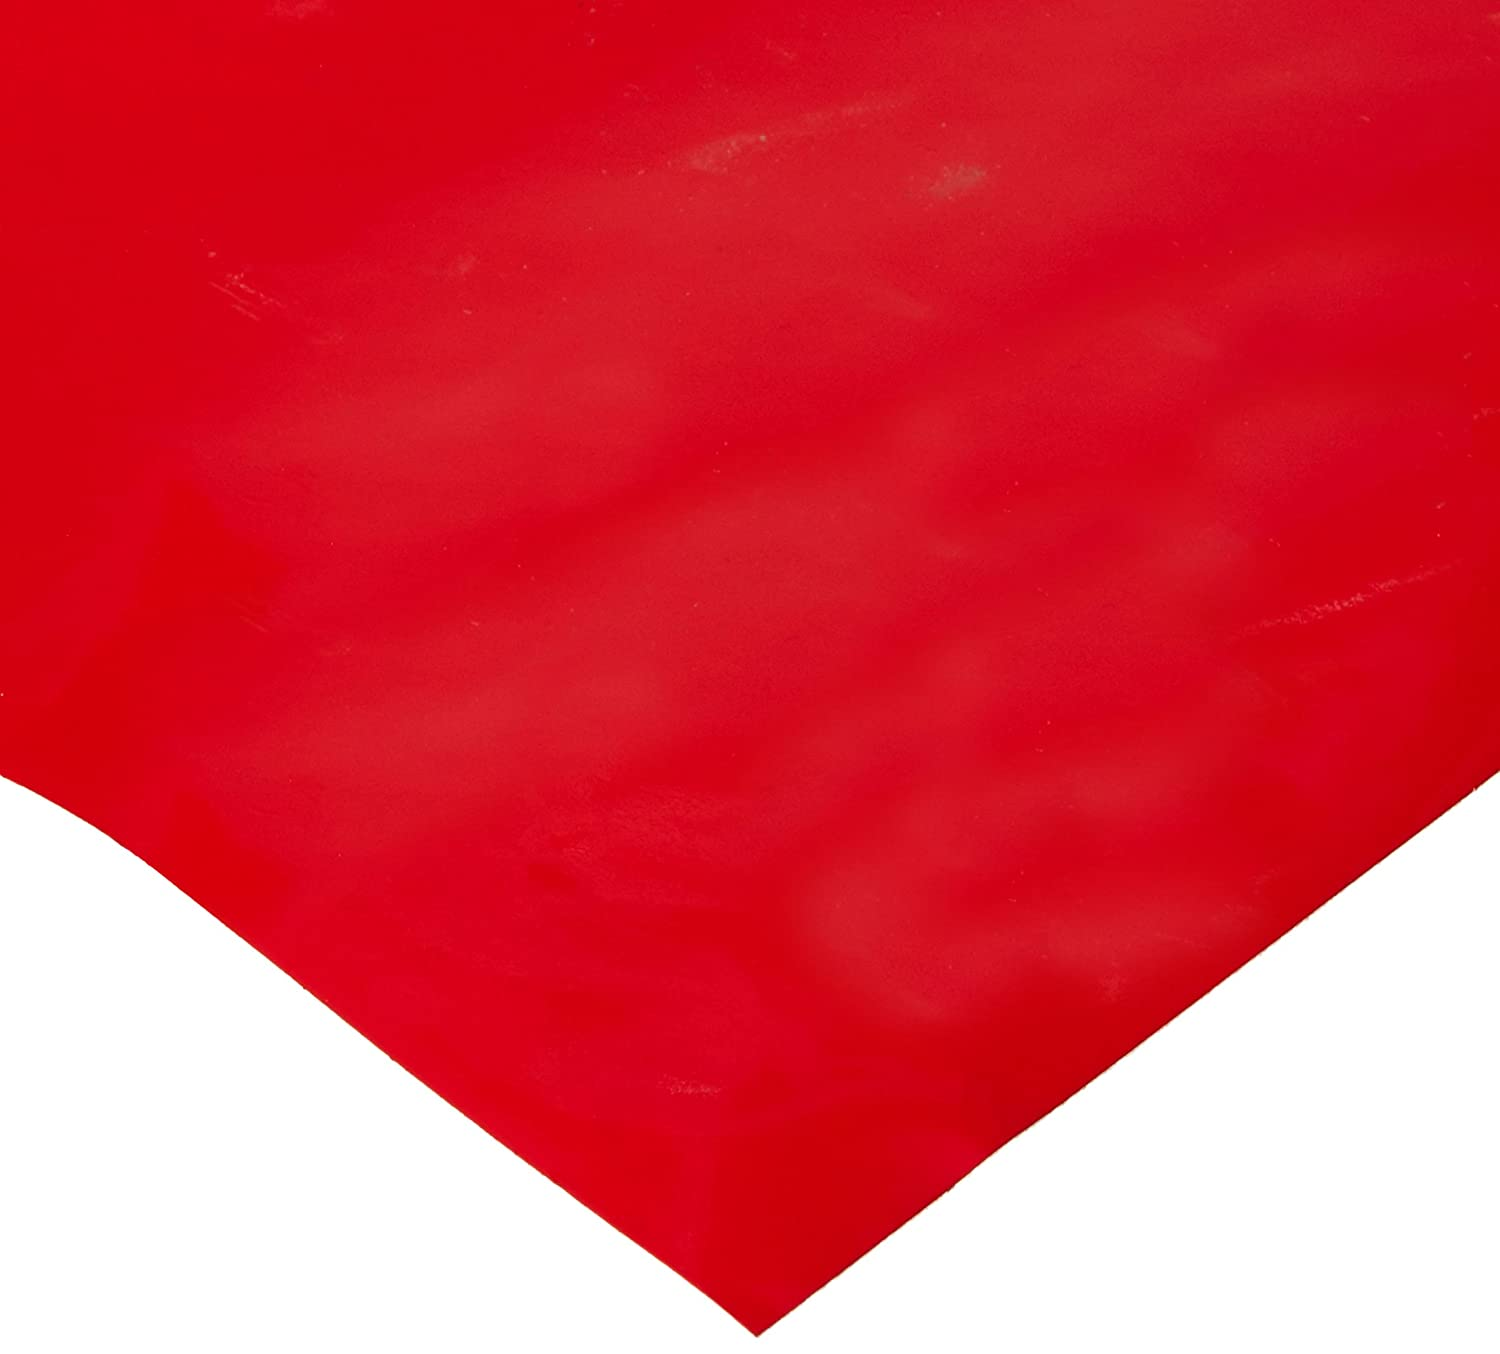 ORACAL 651-12010-031-Red Permanent Vinyl, 12 x 10' 12 x 10'